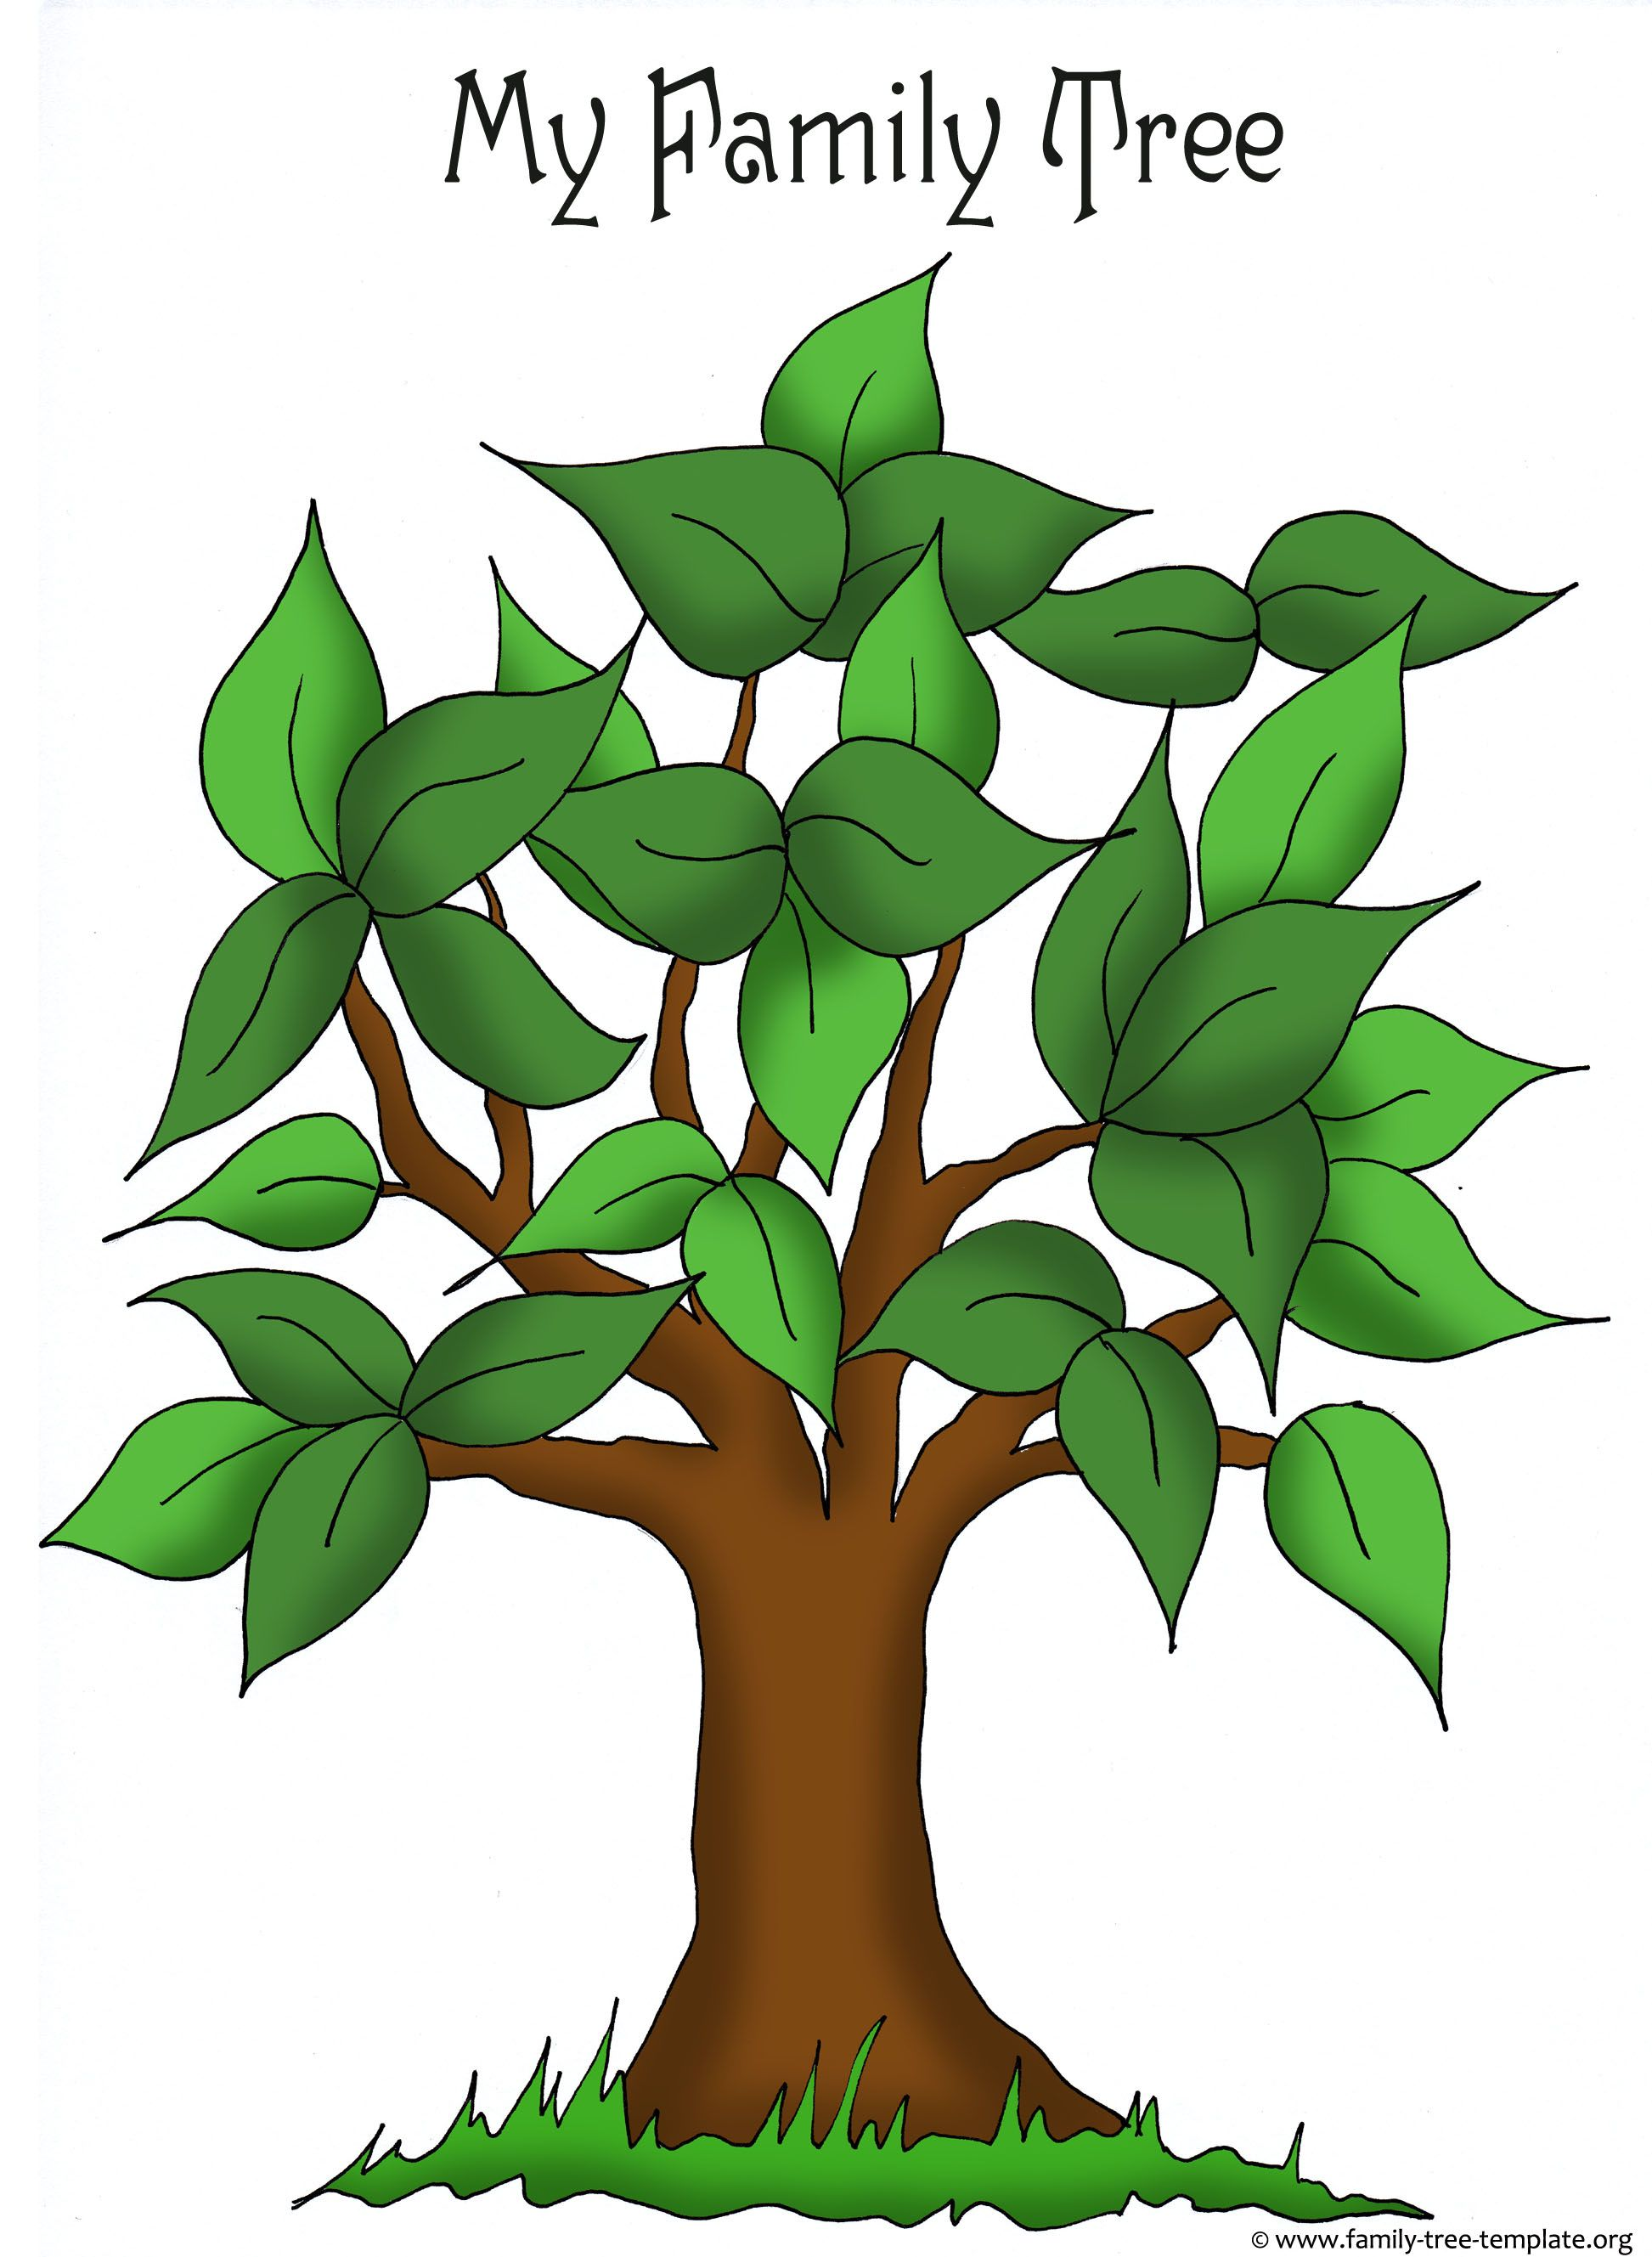 Artistic Apple Tree Template For Free Placement Of Family Members